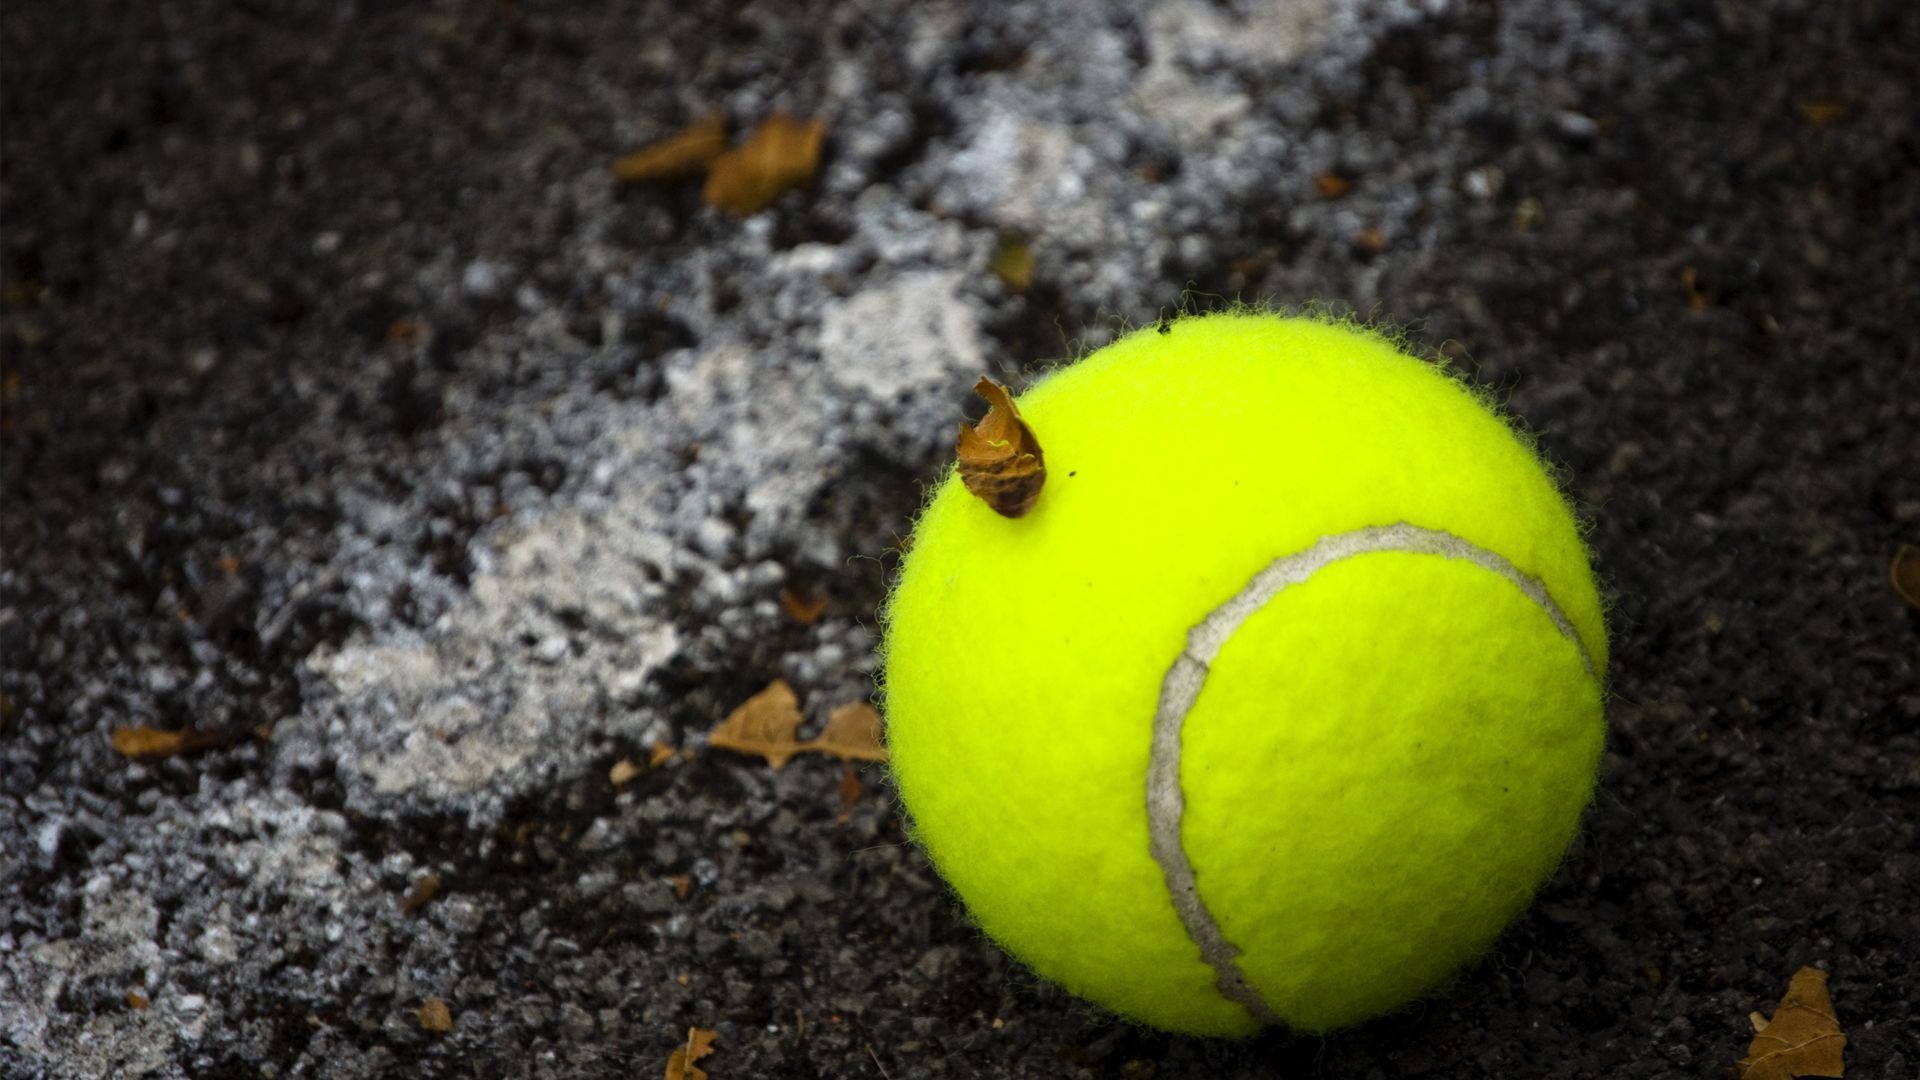 Beautiful Loptica Za Tenis Wallpaper Hd Pozadine Check More At Http Pozadine Info Sport Loptica Za Tenis Tennis Wallpaper Tennis Ball Tennis Lessons